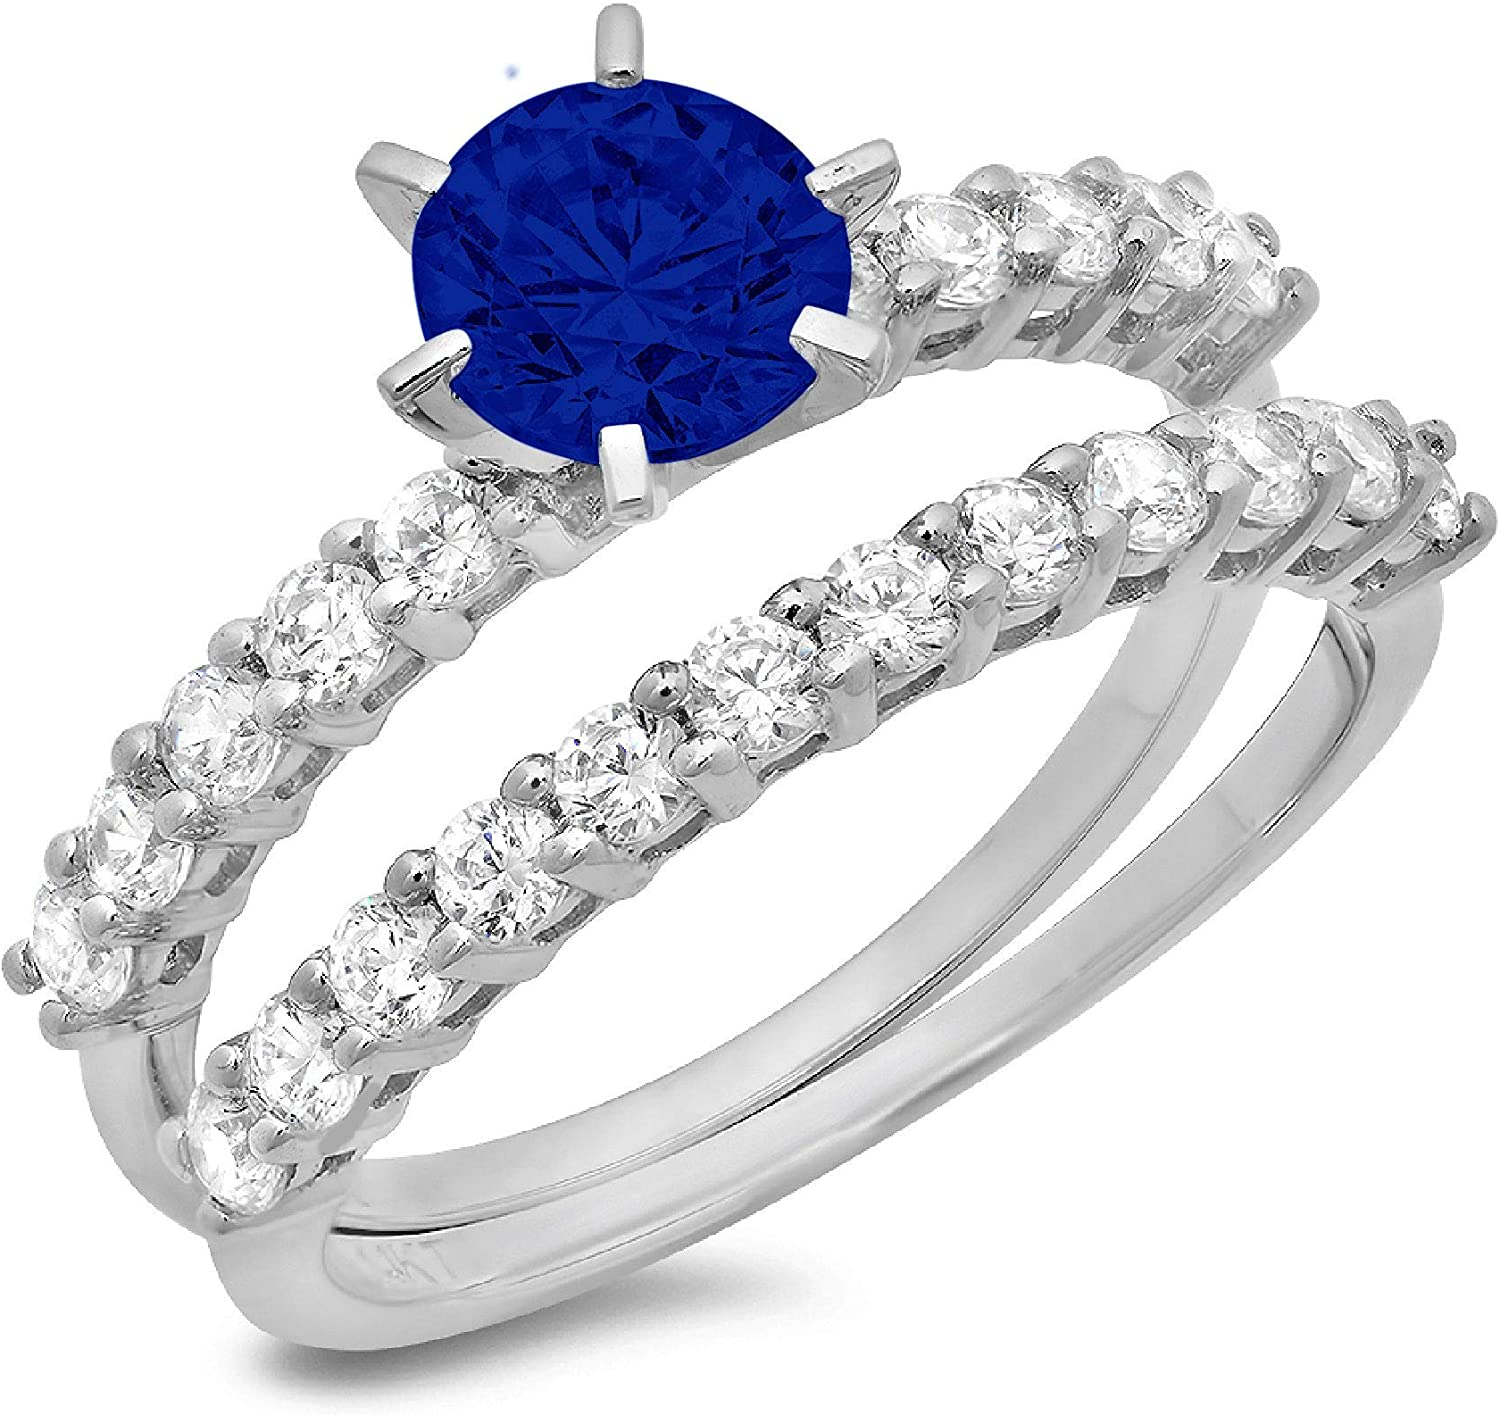 2.94ct Round Cut Pave Solitaire with Accent Ideal Flawless Simulated CZ Blue Sapphire Engagement Promise Designer Anniversary Wedding Bridal ring band set 14k White Gold